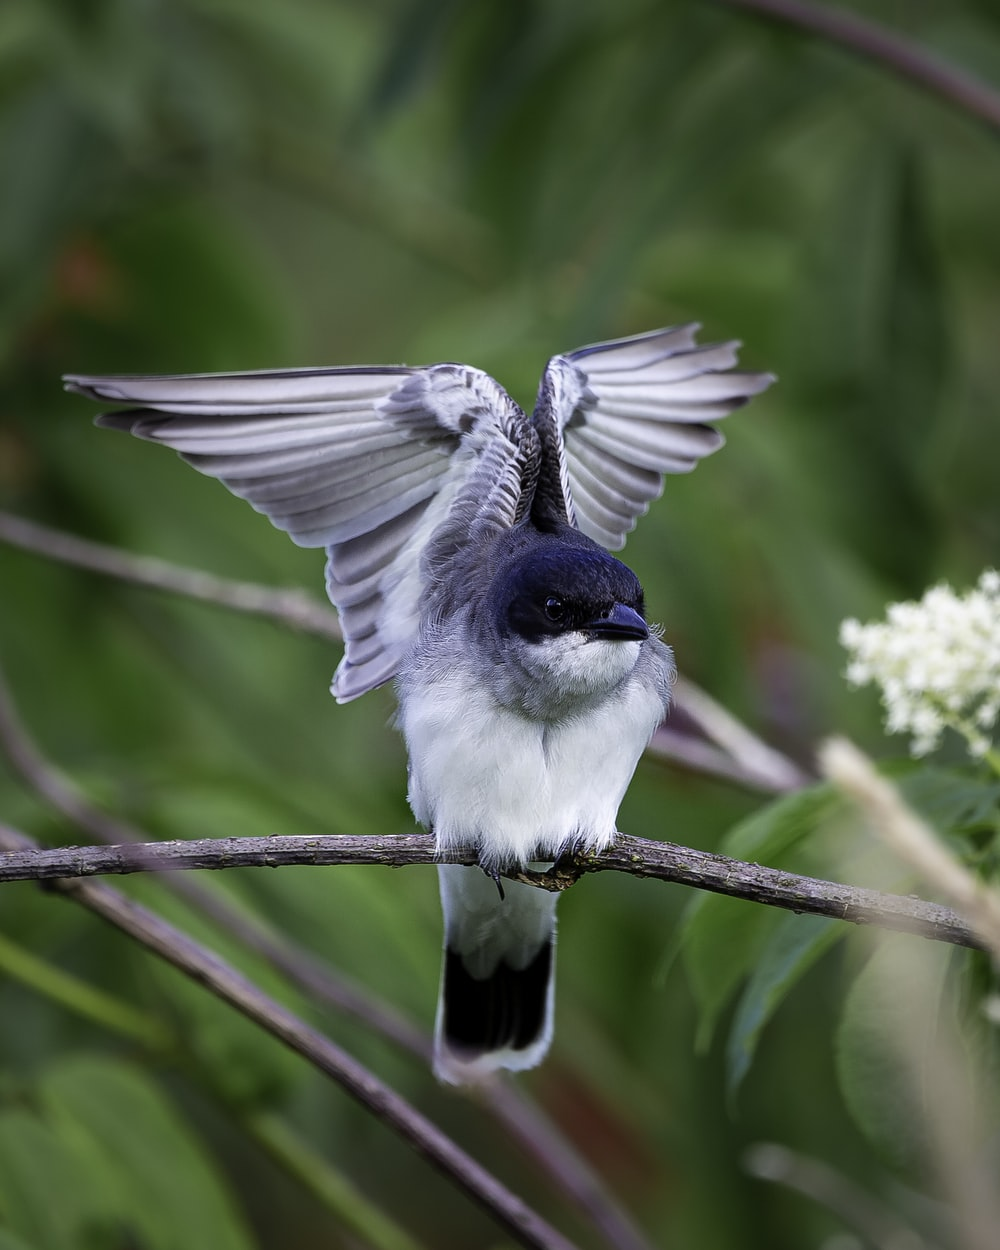 blue and white bird on tree branch